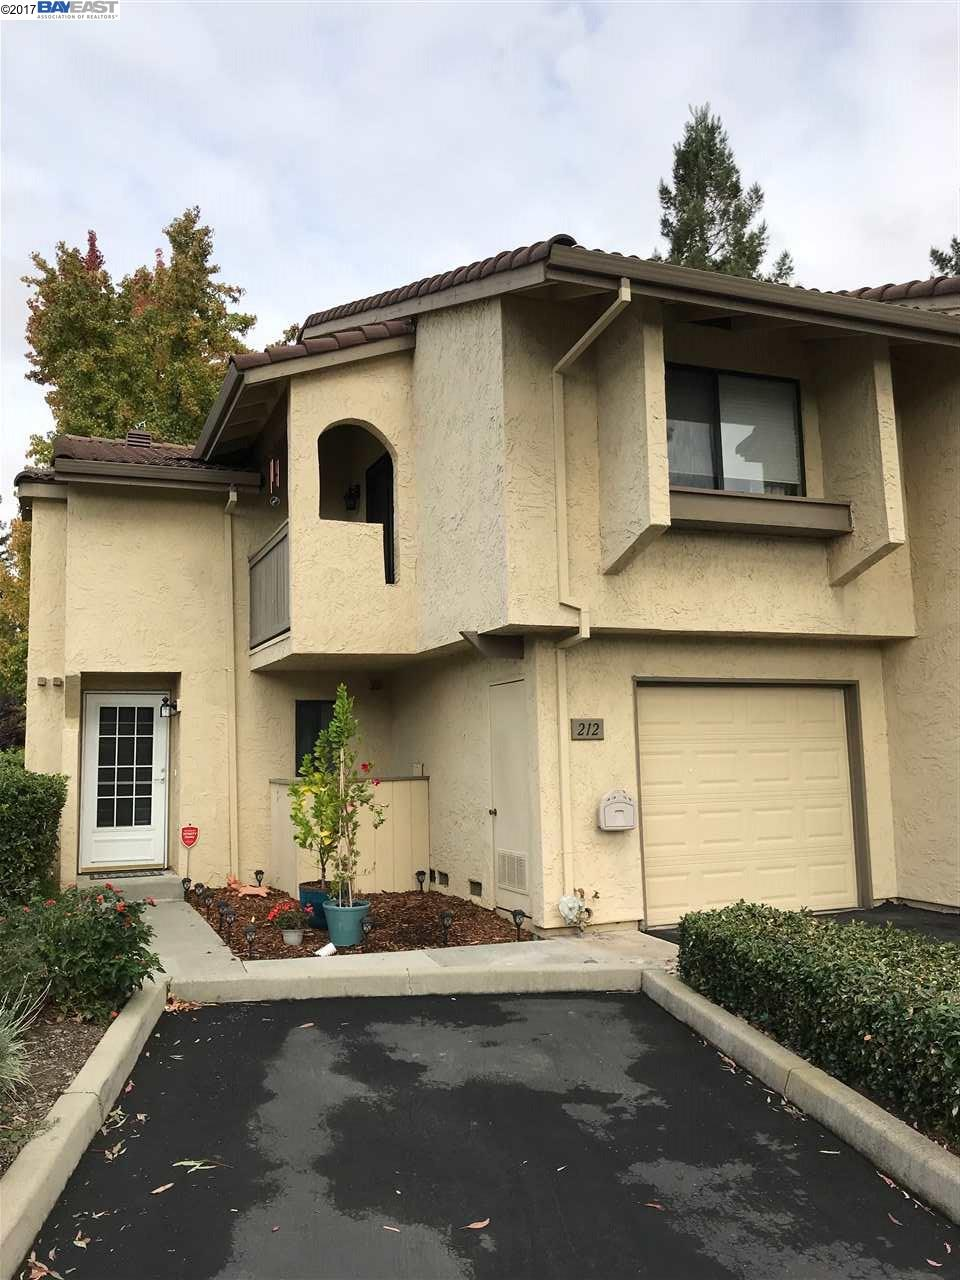 Townhouse for Sale at 212 Garden Common 212 Garden Common Livermore, California 94551 United States